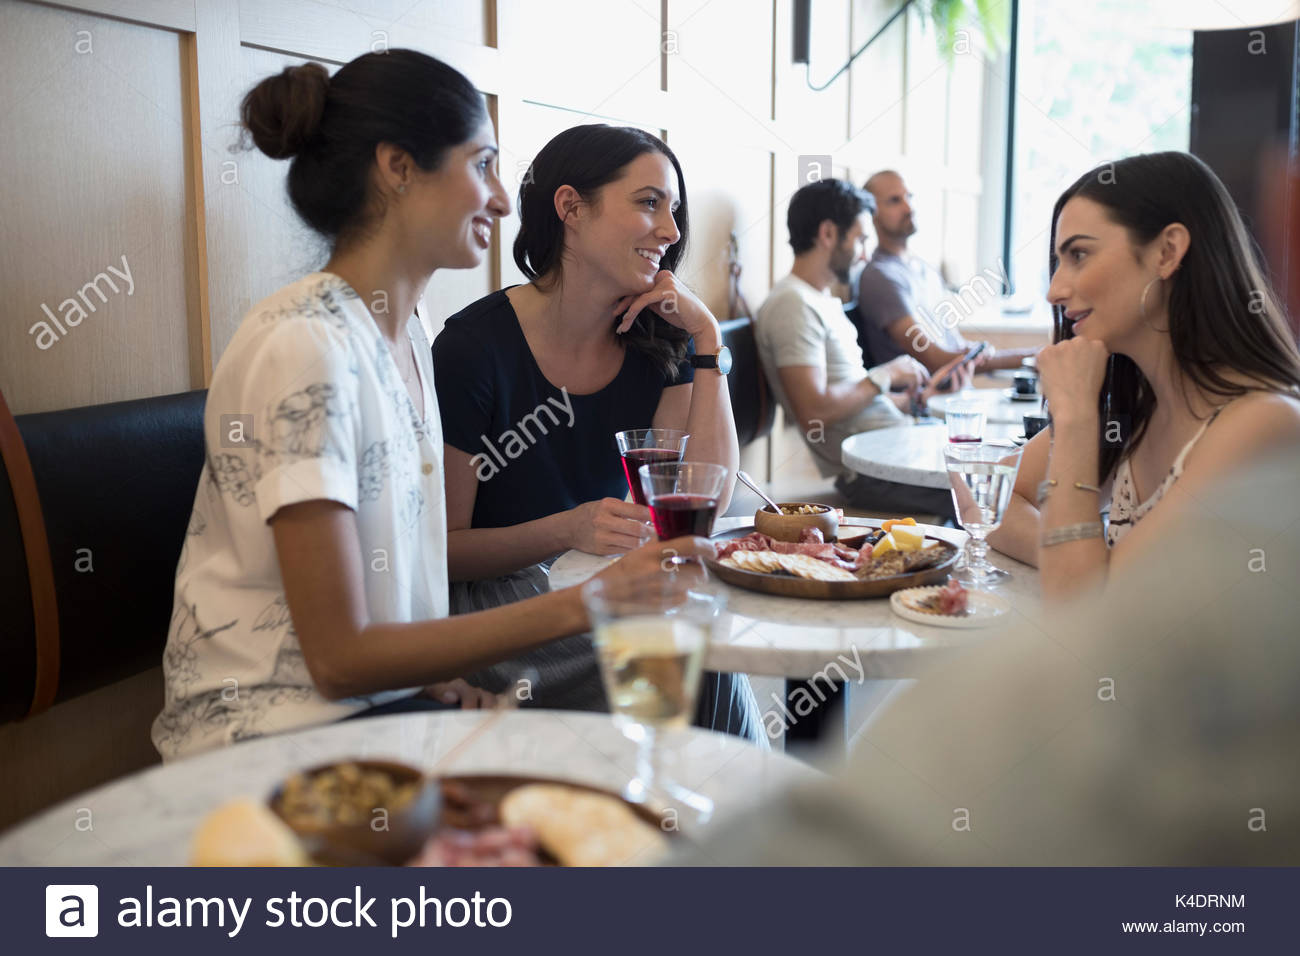 Women friends drinking wine at cafe table Stock Photo